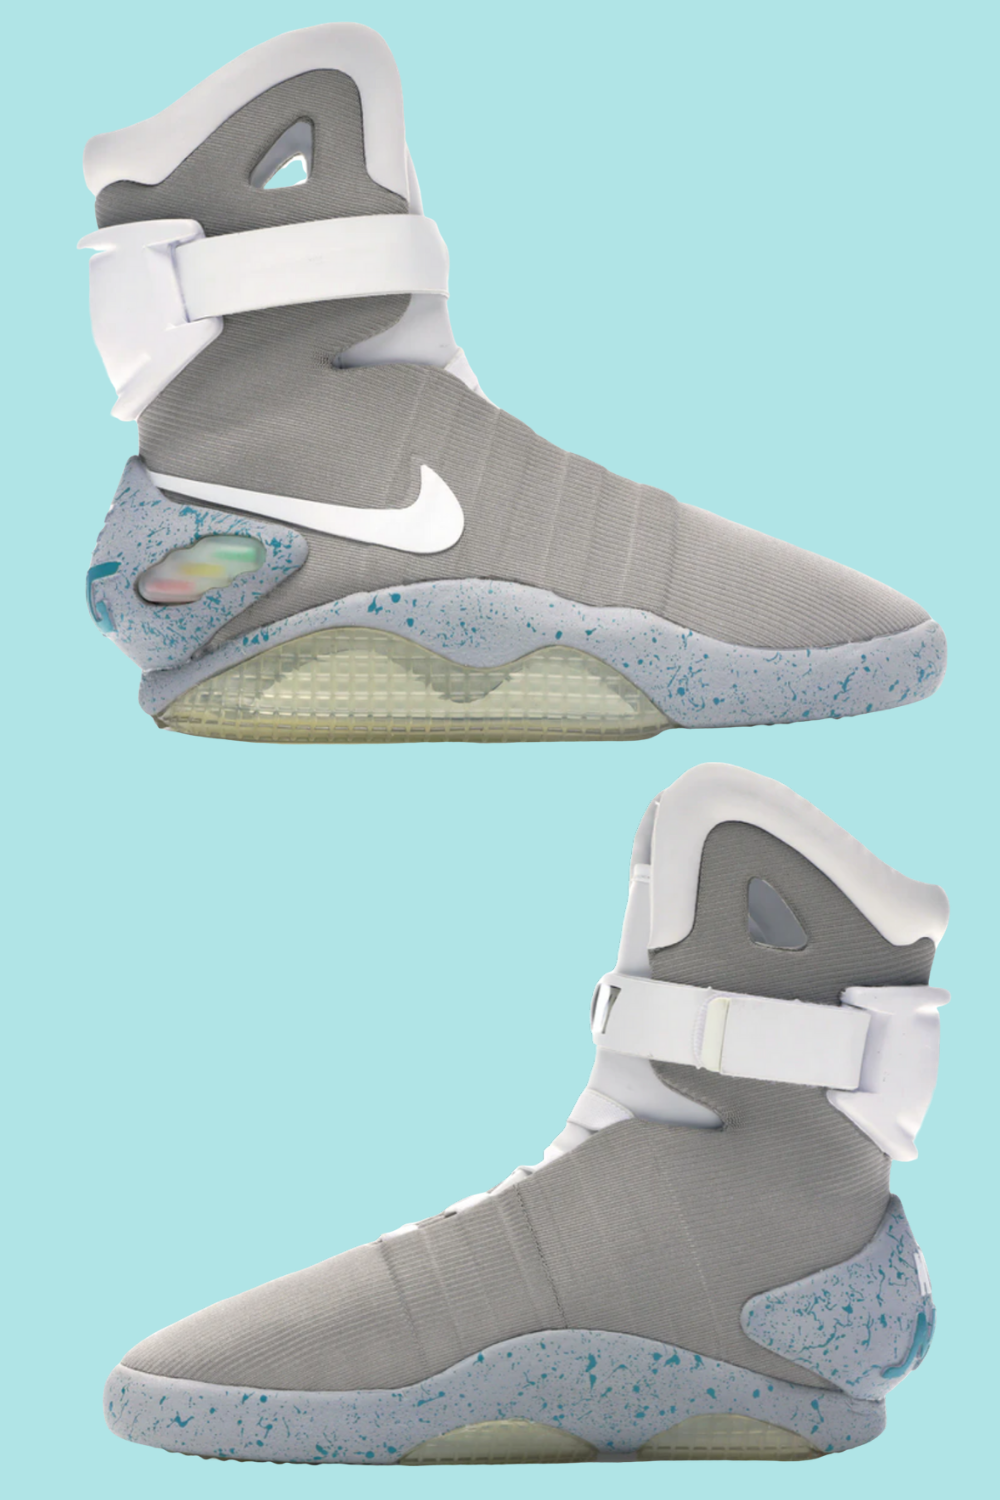 Nike MAG Back to the Future (2011) in